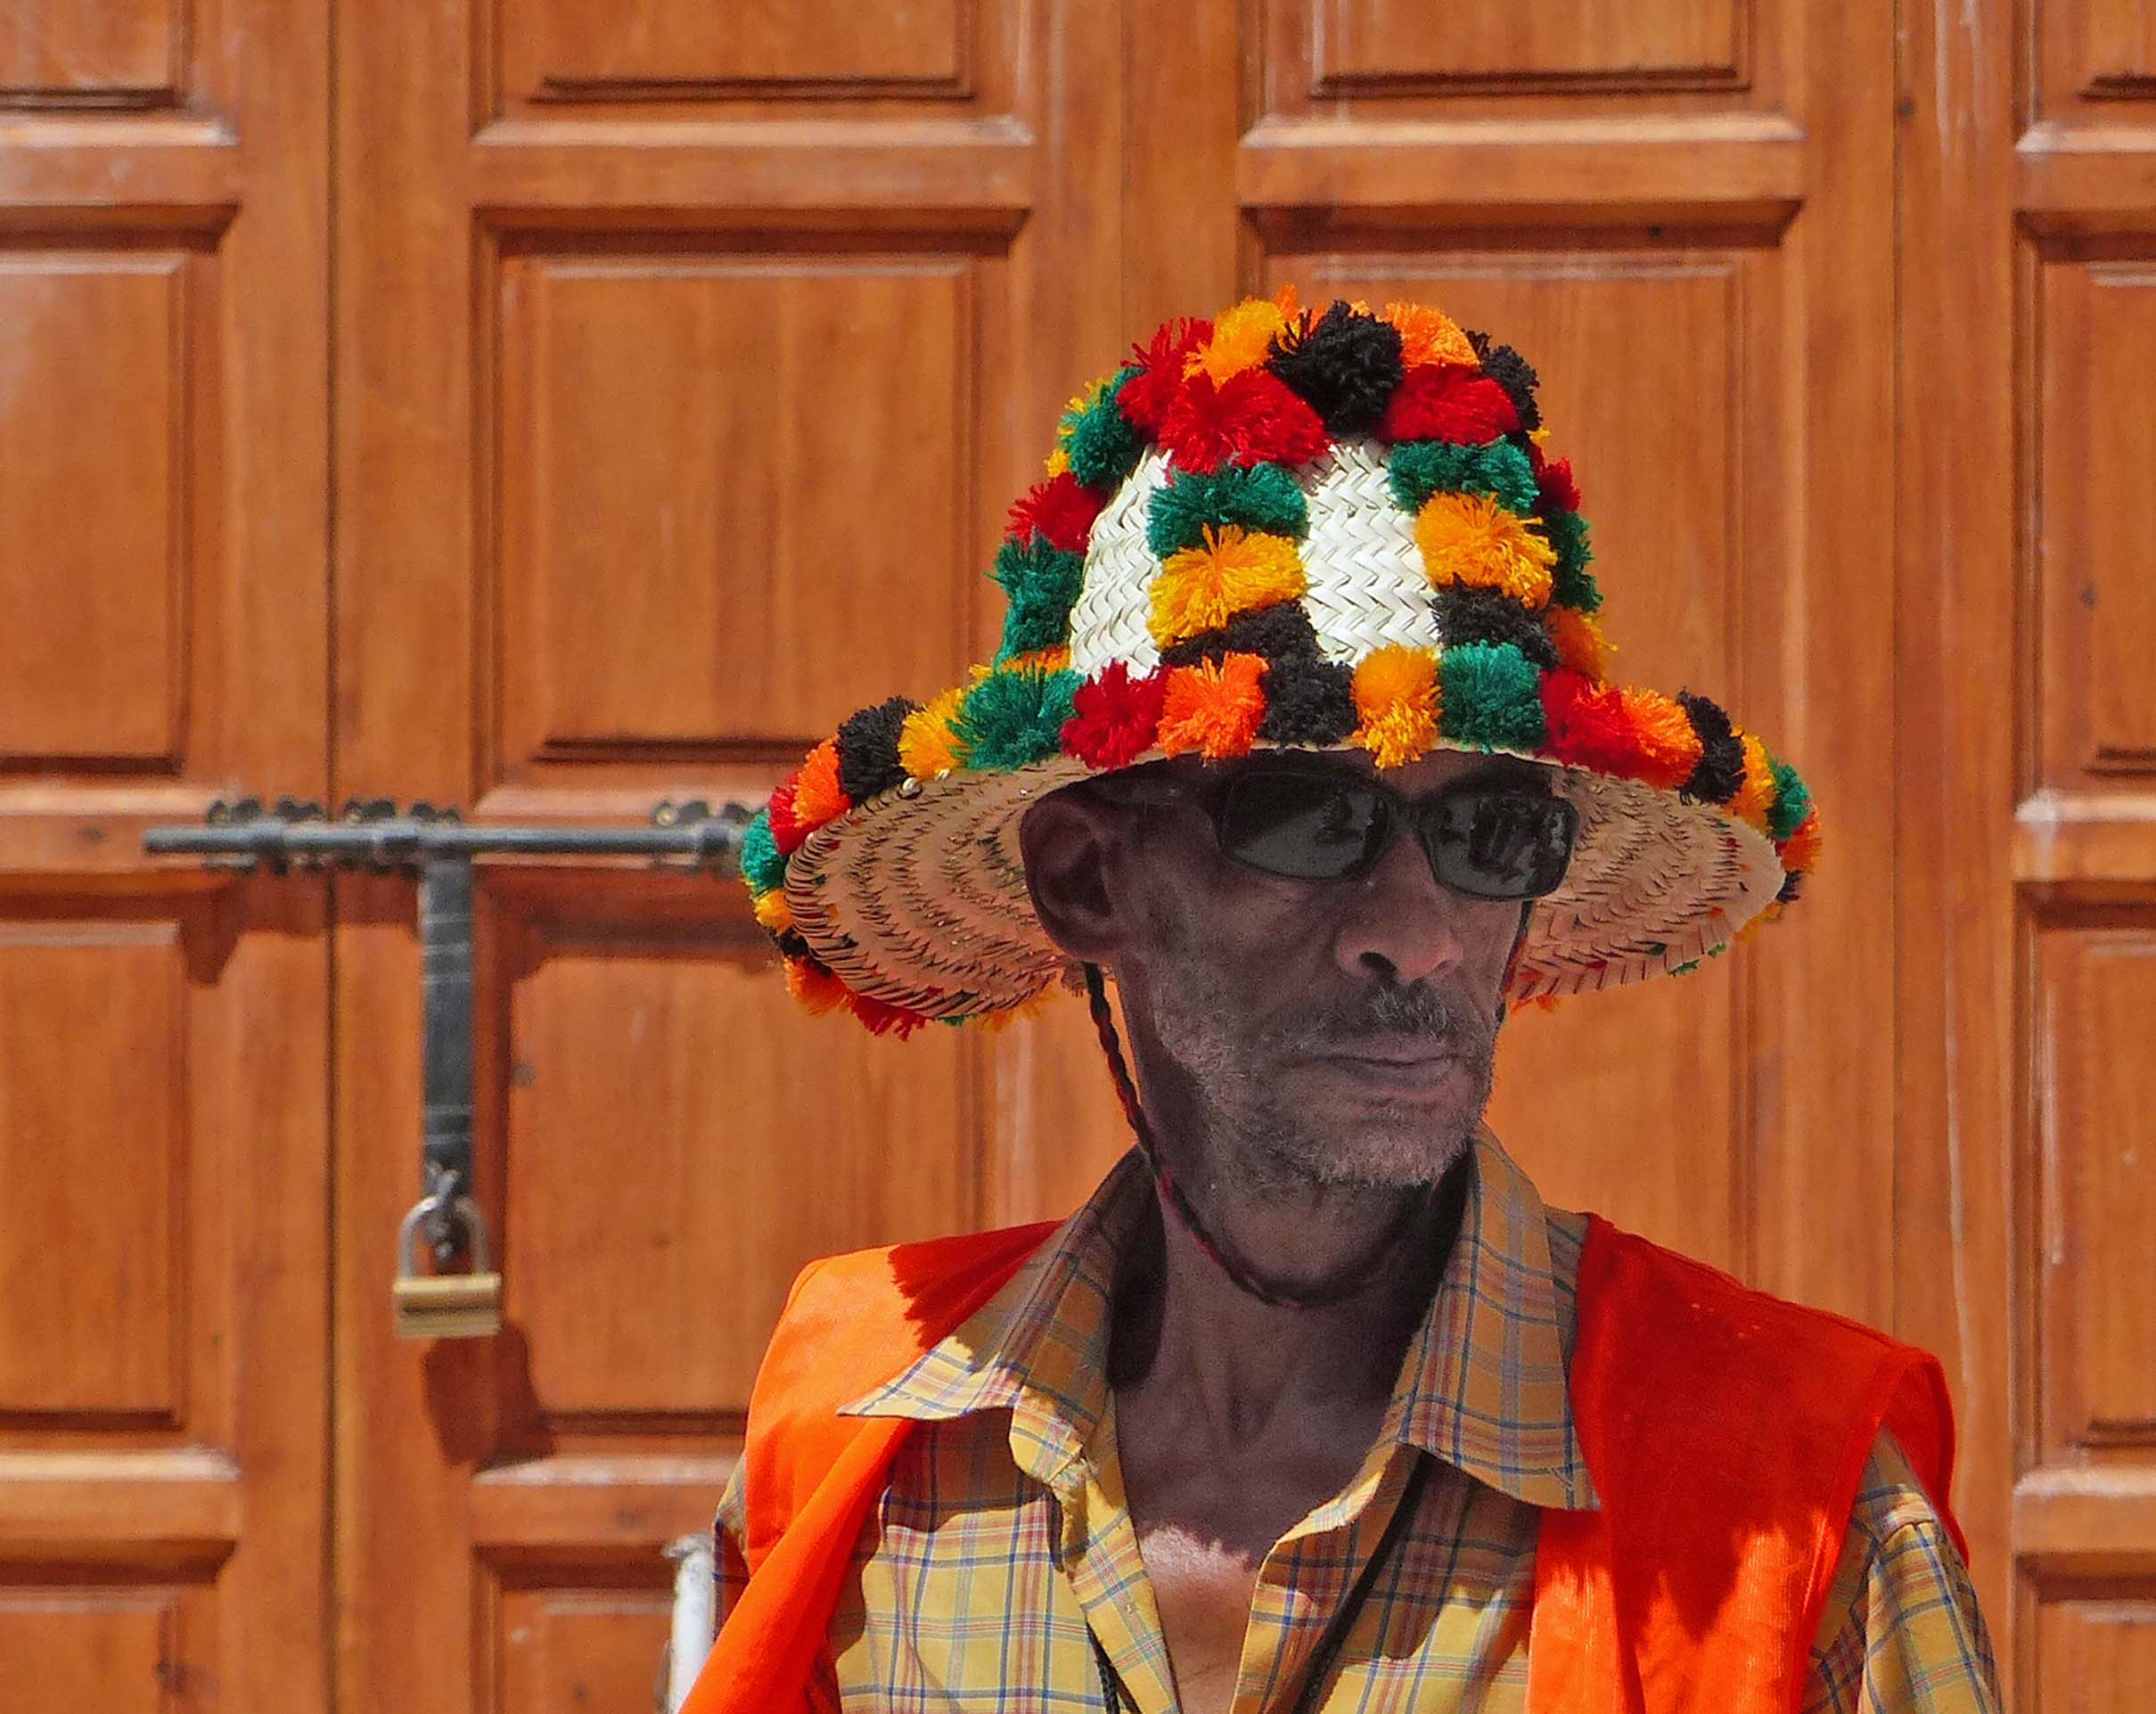 Man in straw hat decorated with pompoms